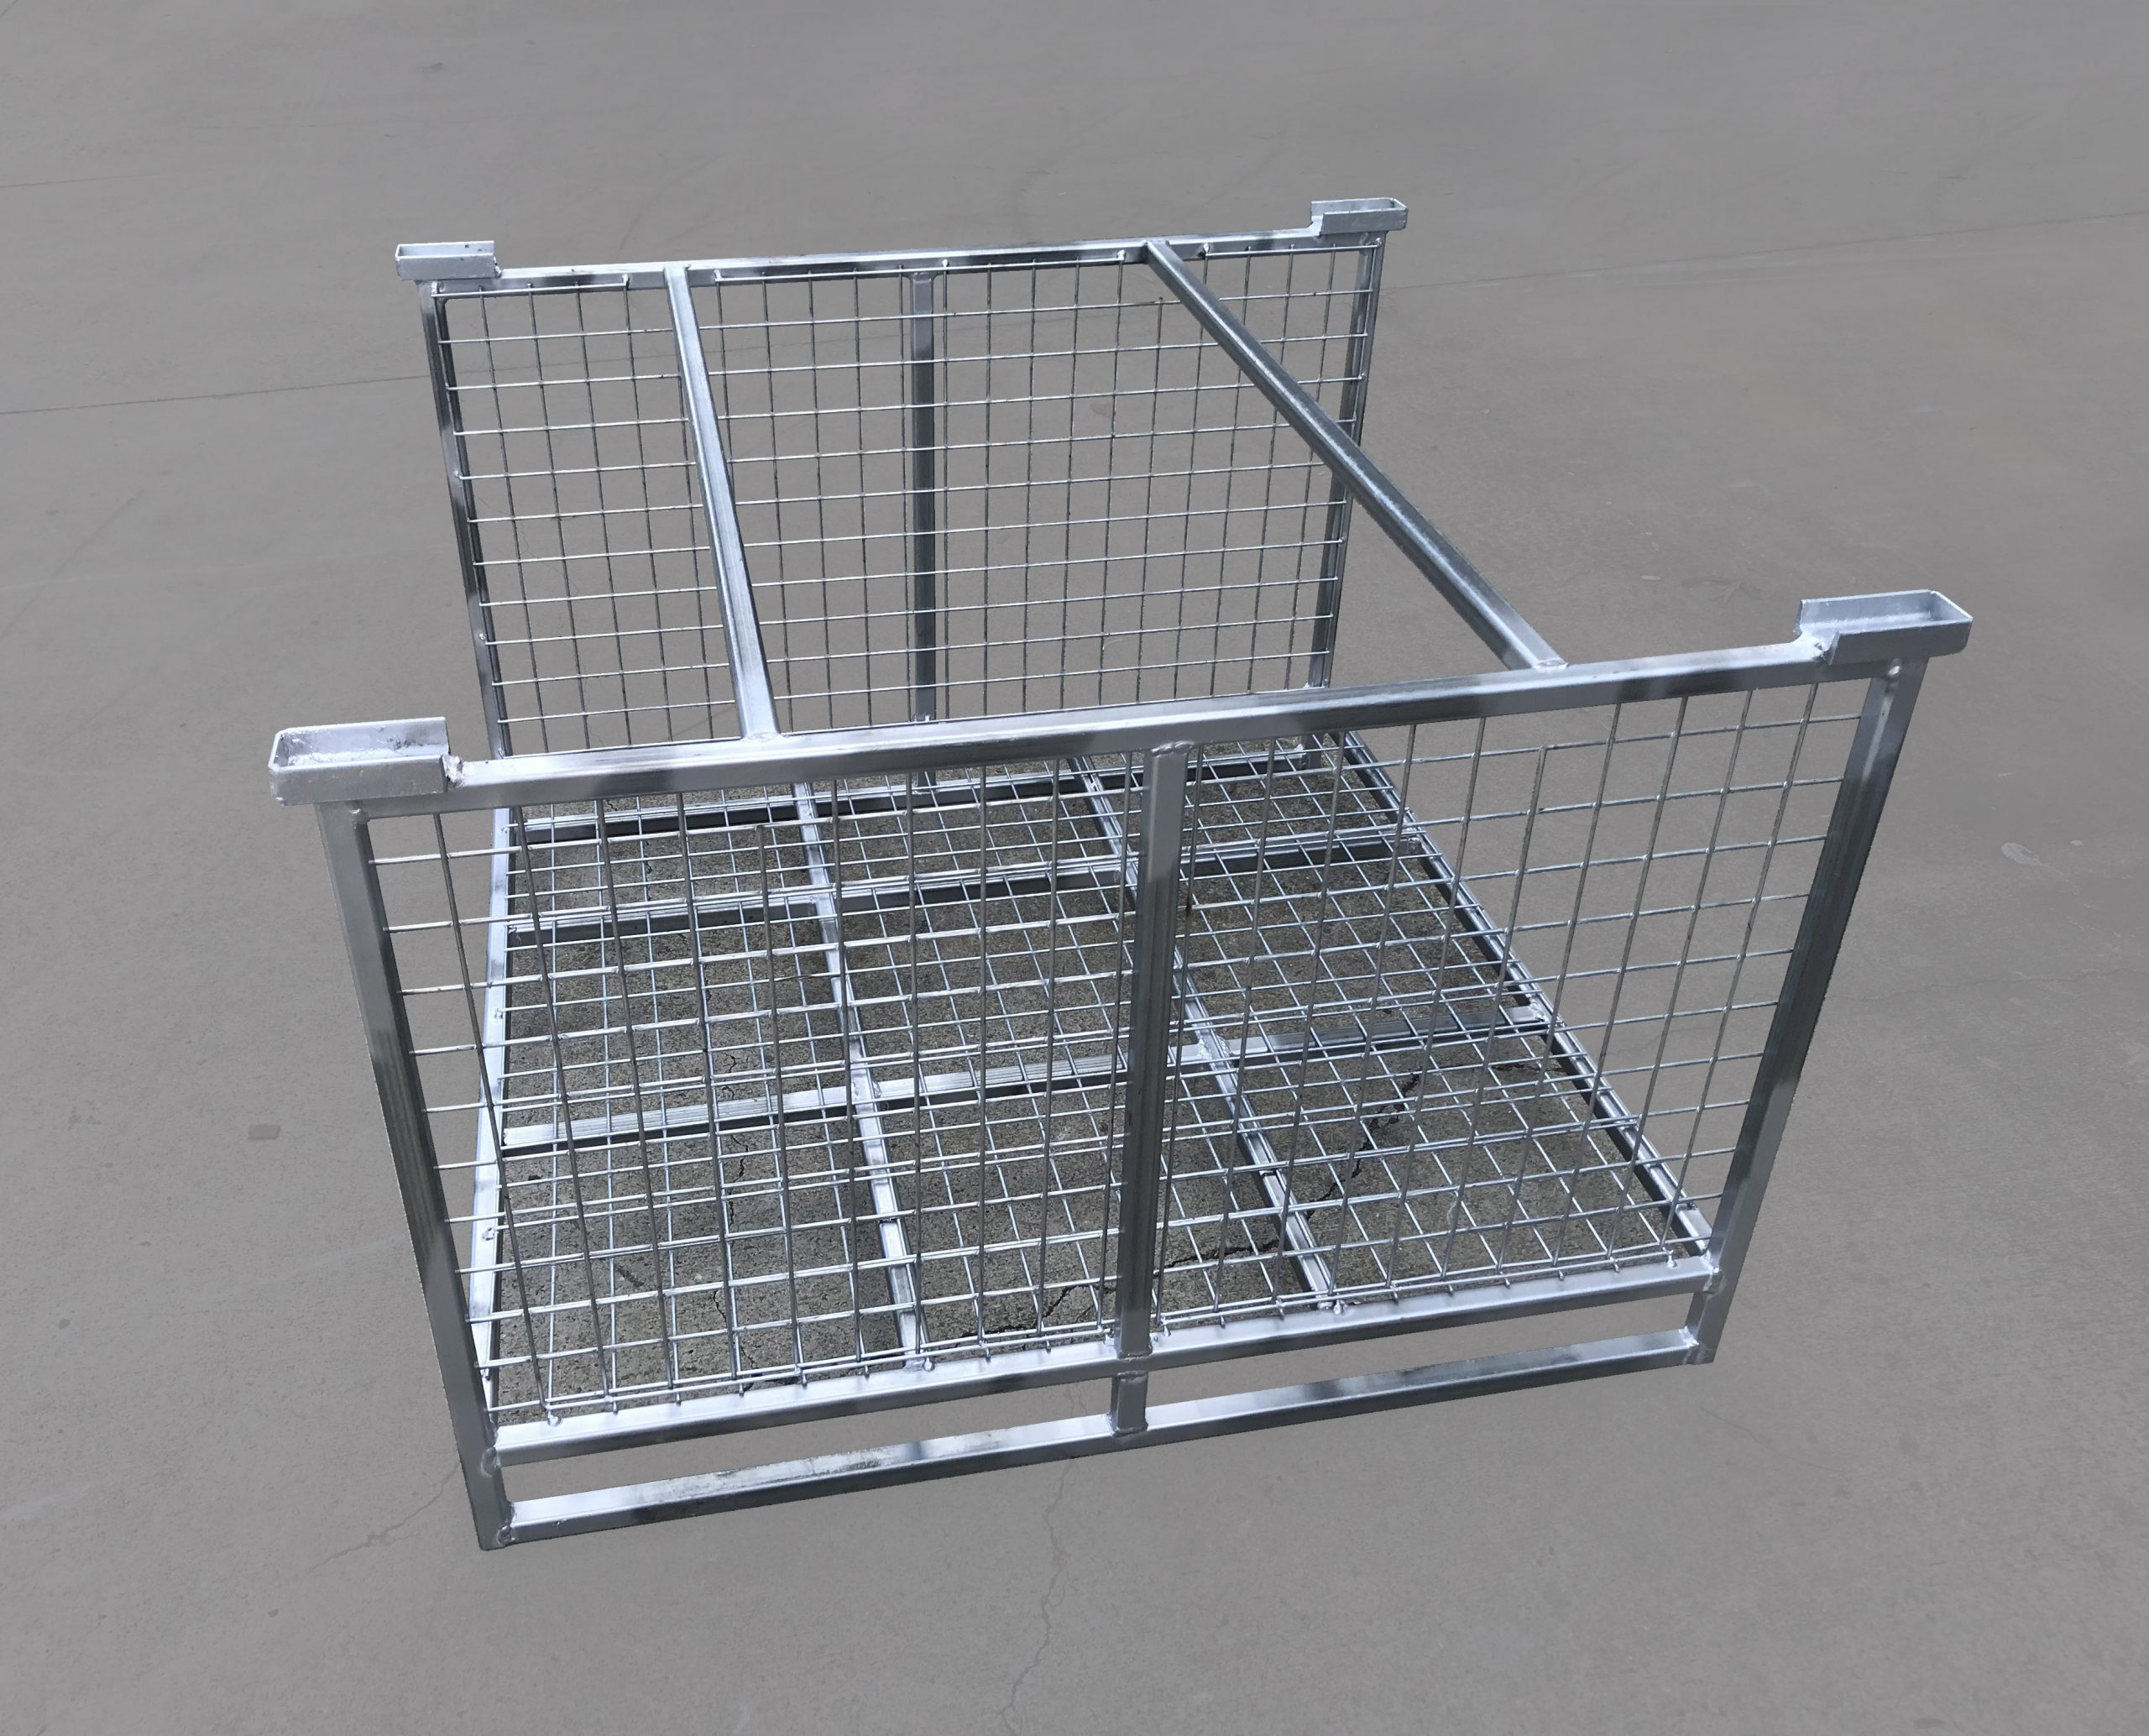 Redesign of Stillage Cages for Marsh Springs